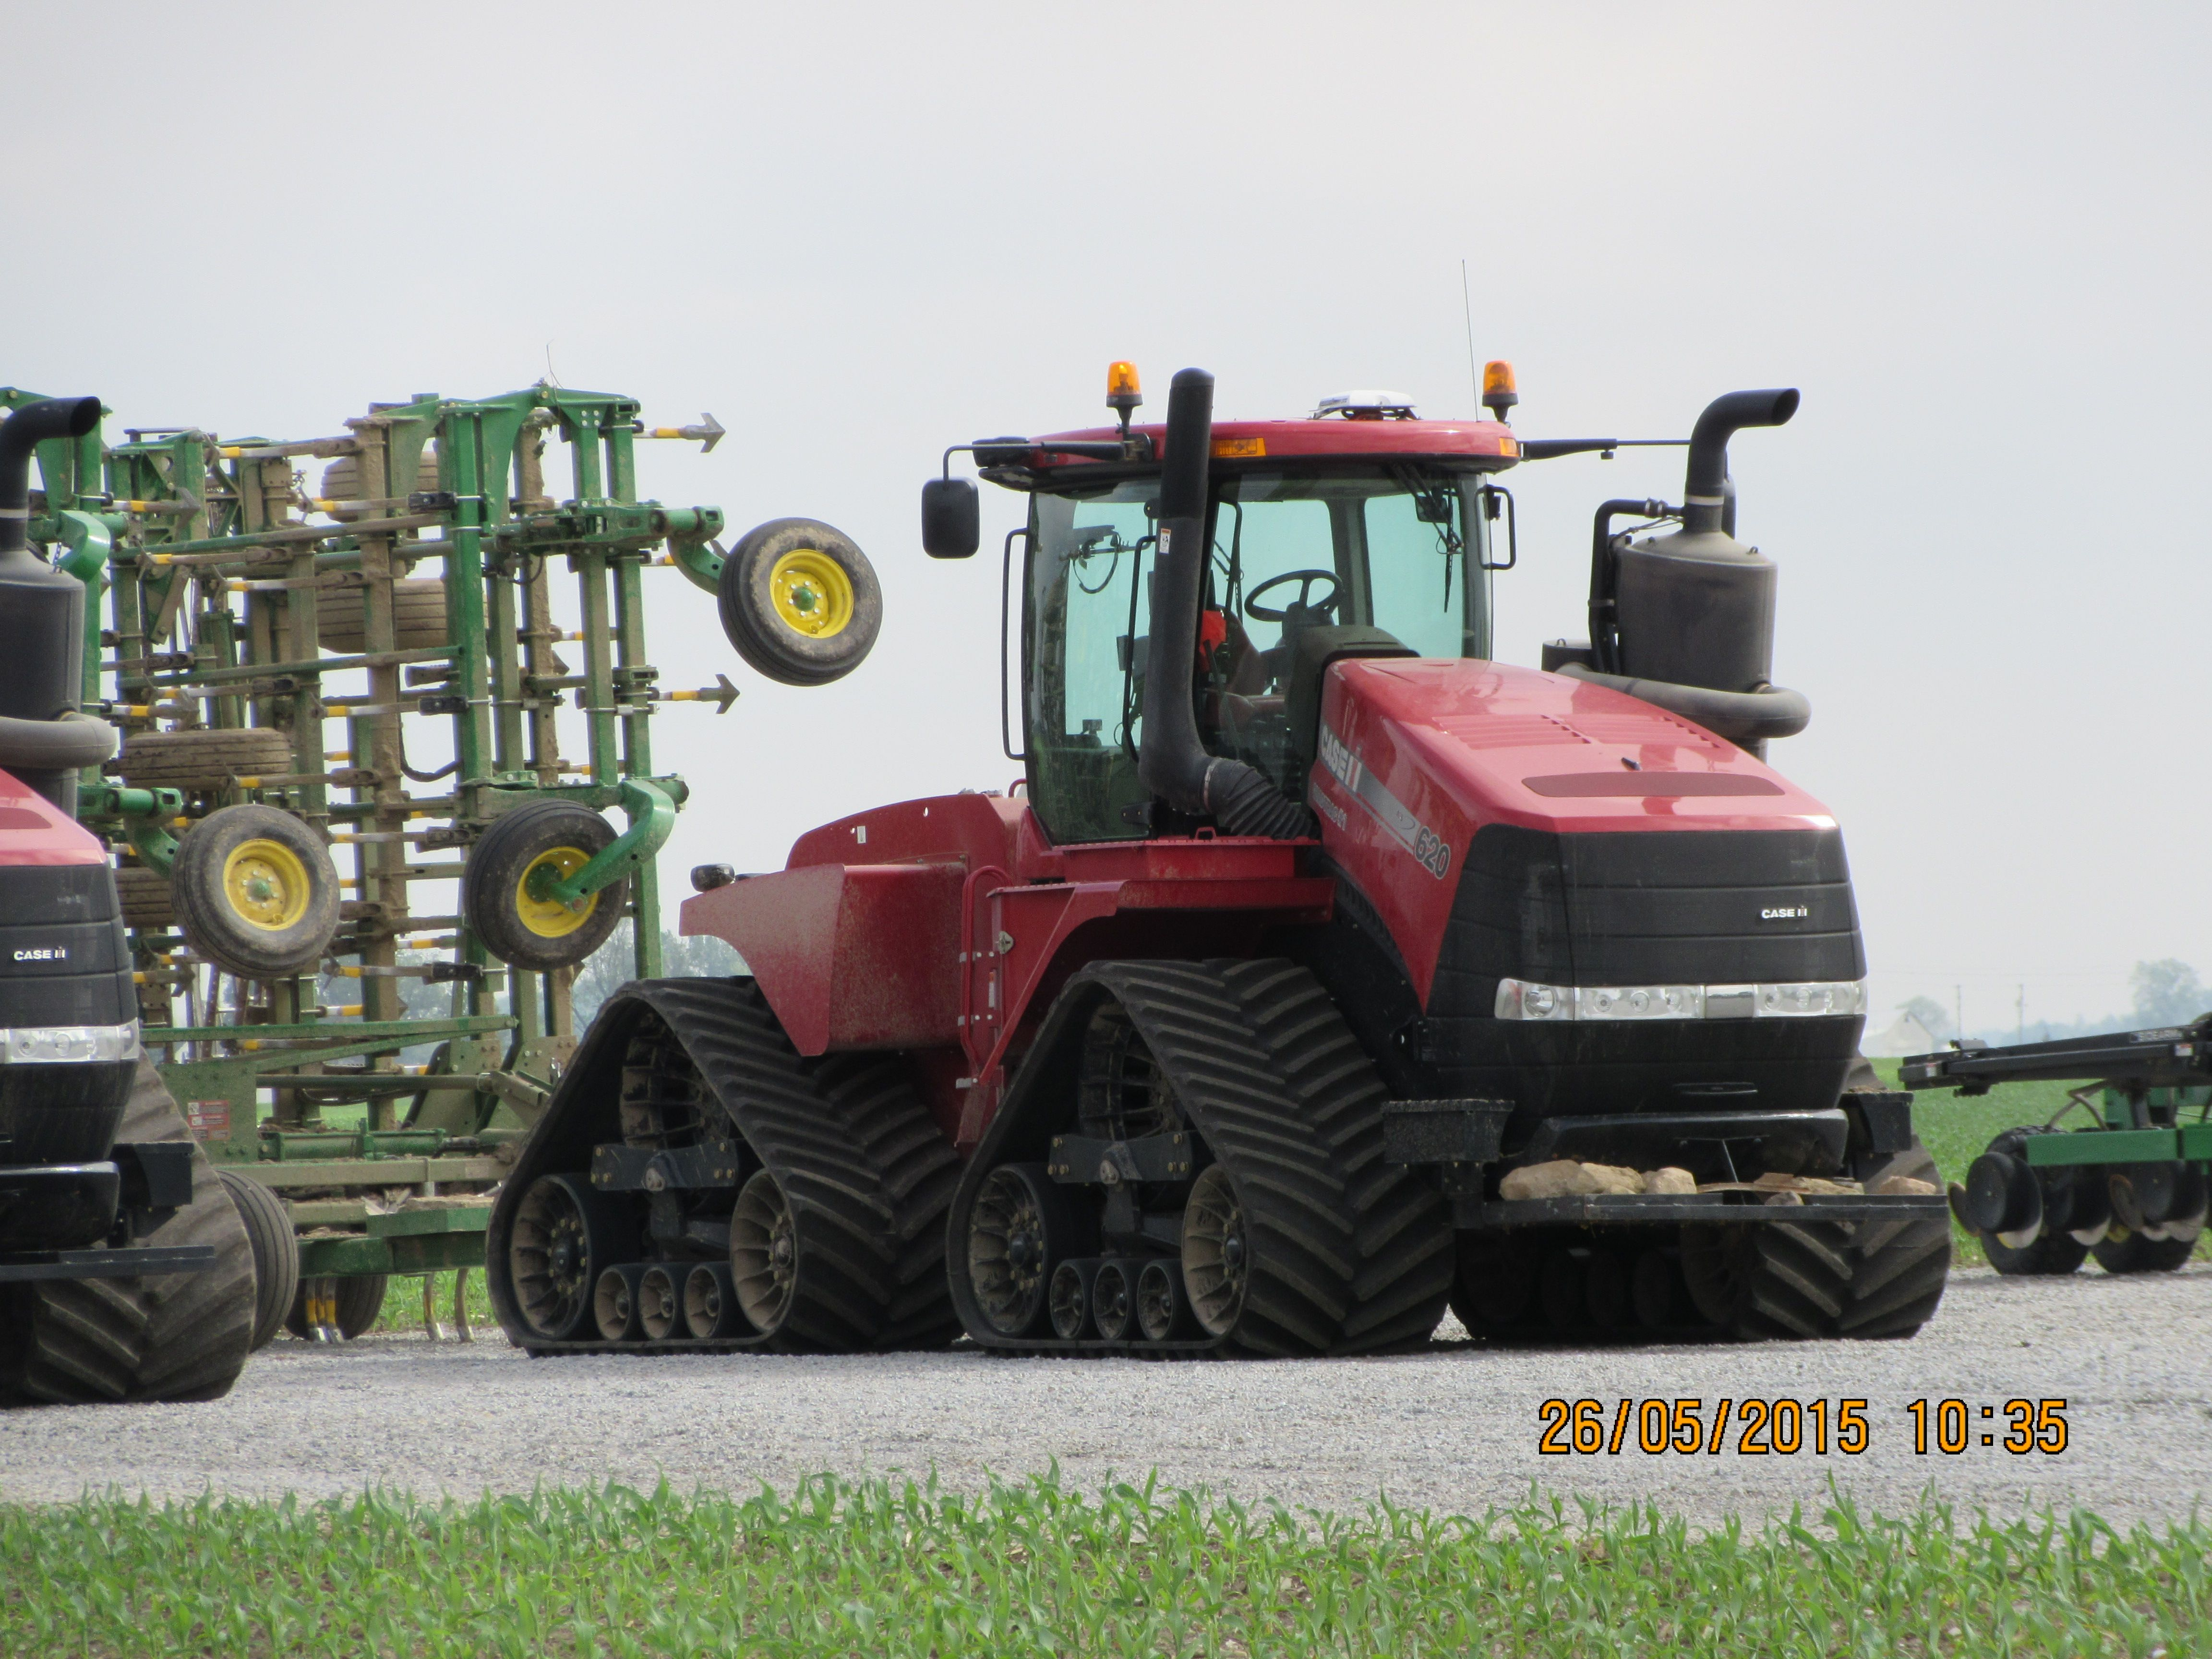 CaseIH Steiger 620 at Wise & Wise Farms